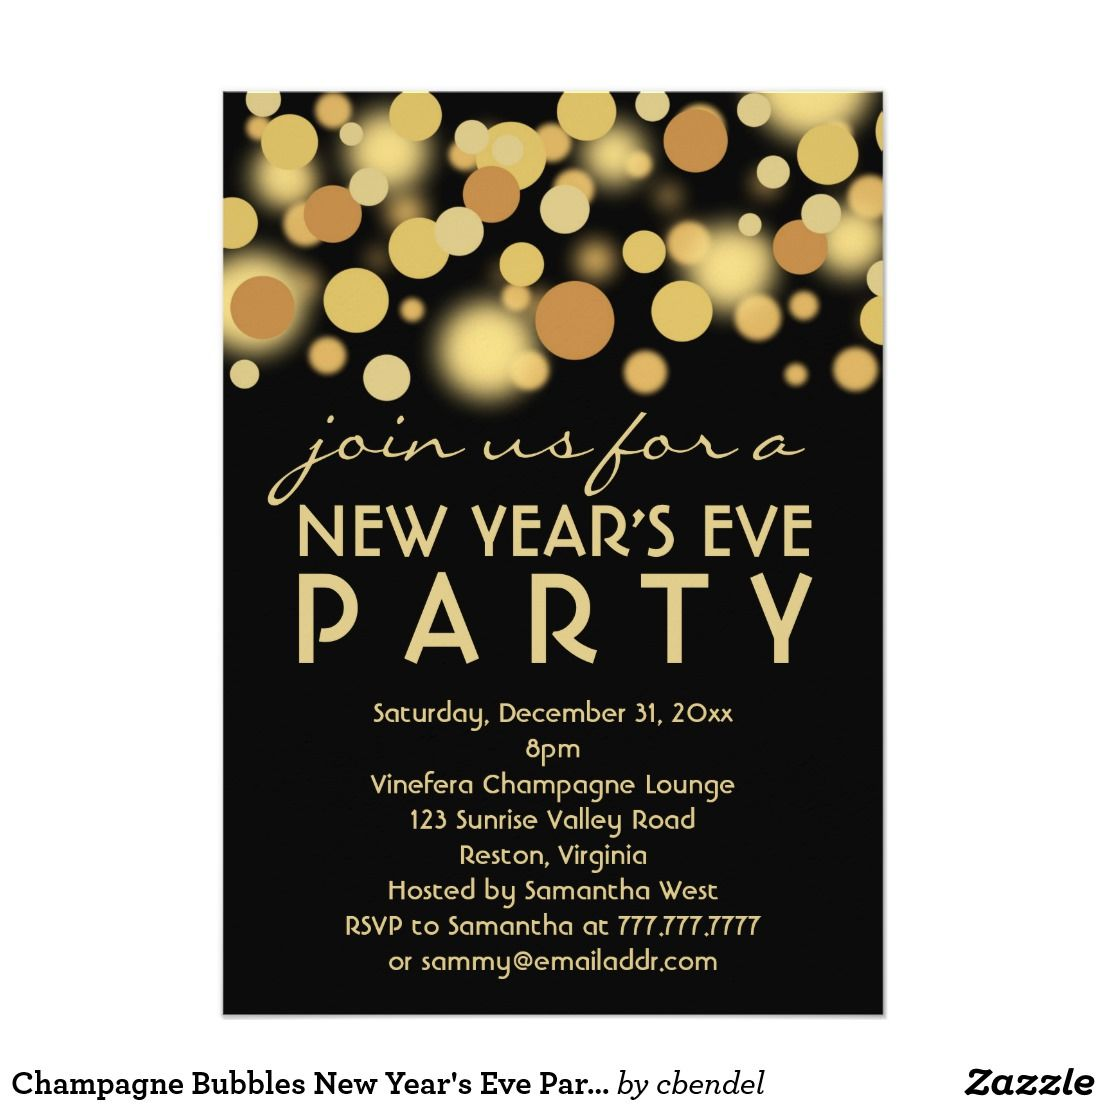 champagne bubbles new years eve party invitationschampagne bubbles new years eve party invitations this modern stylish design features a gold bokeh dot